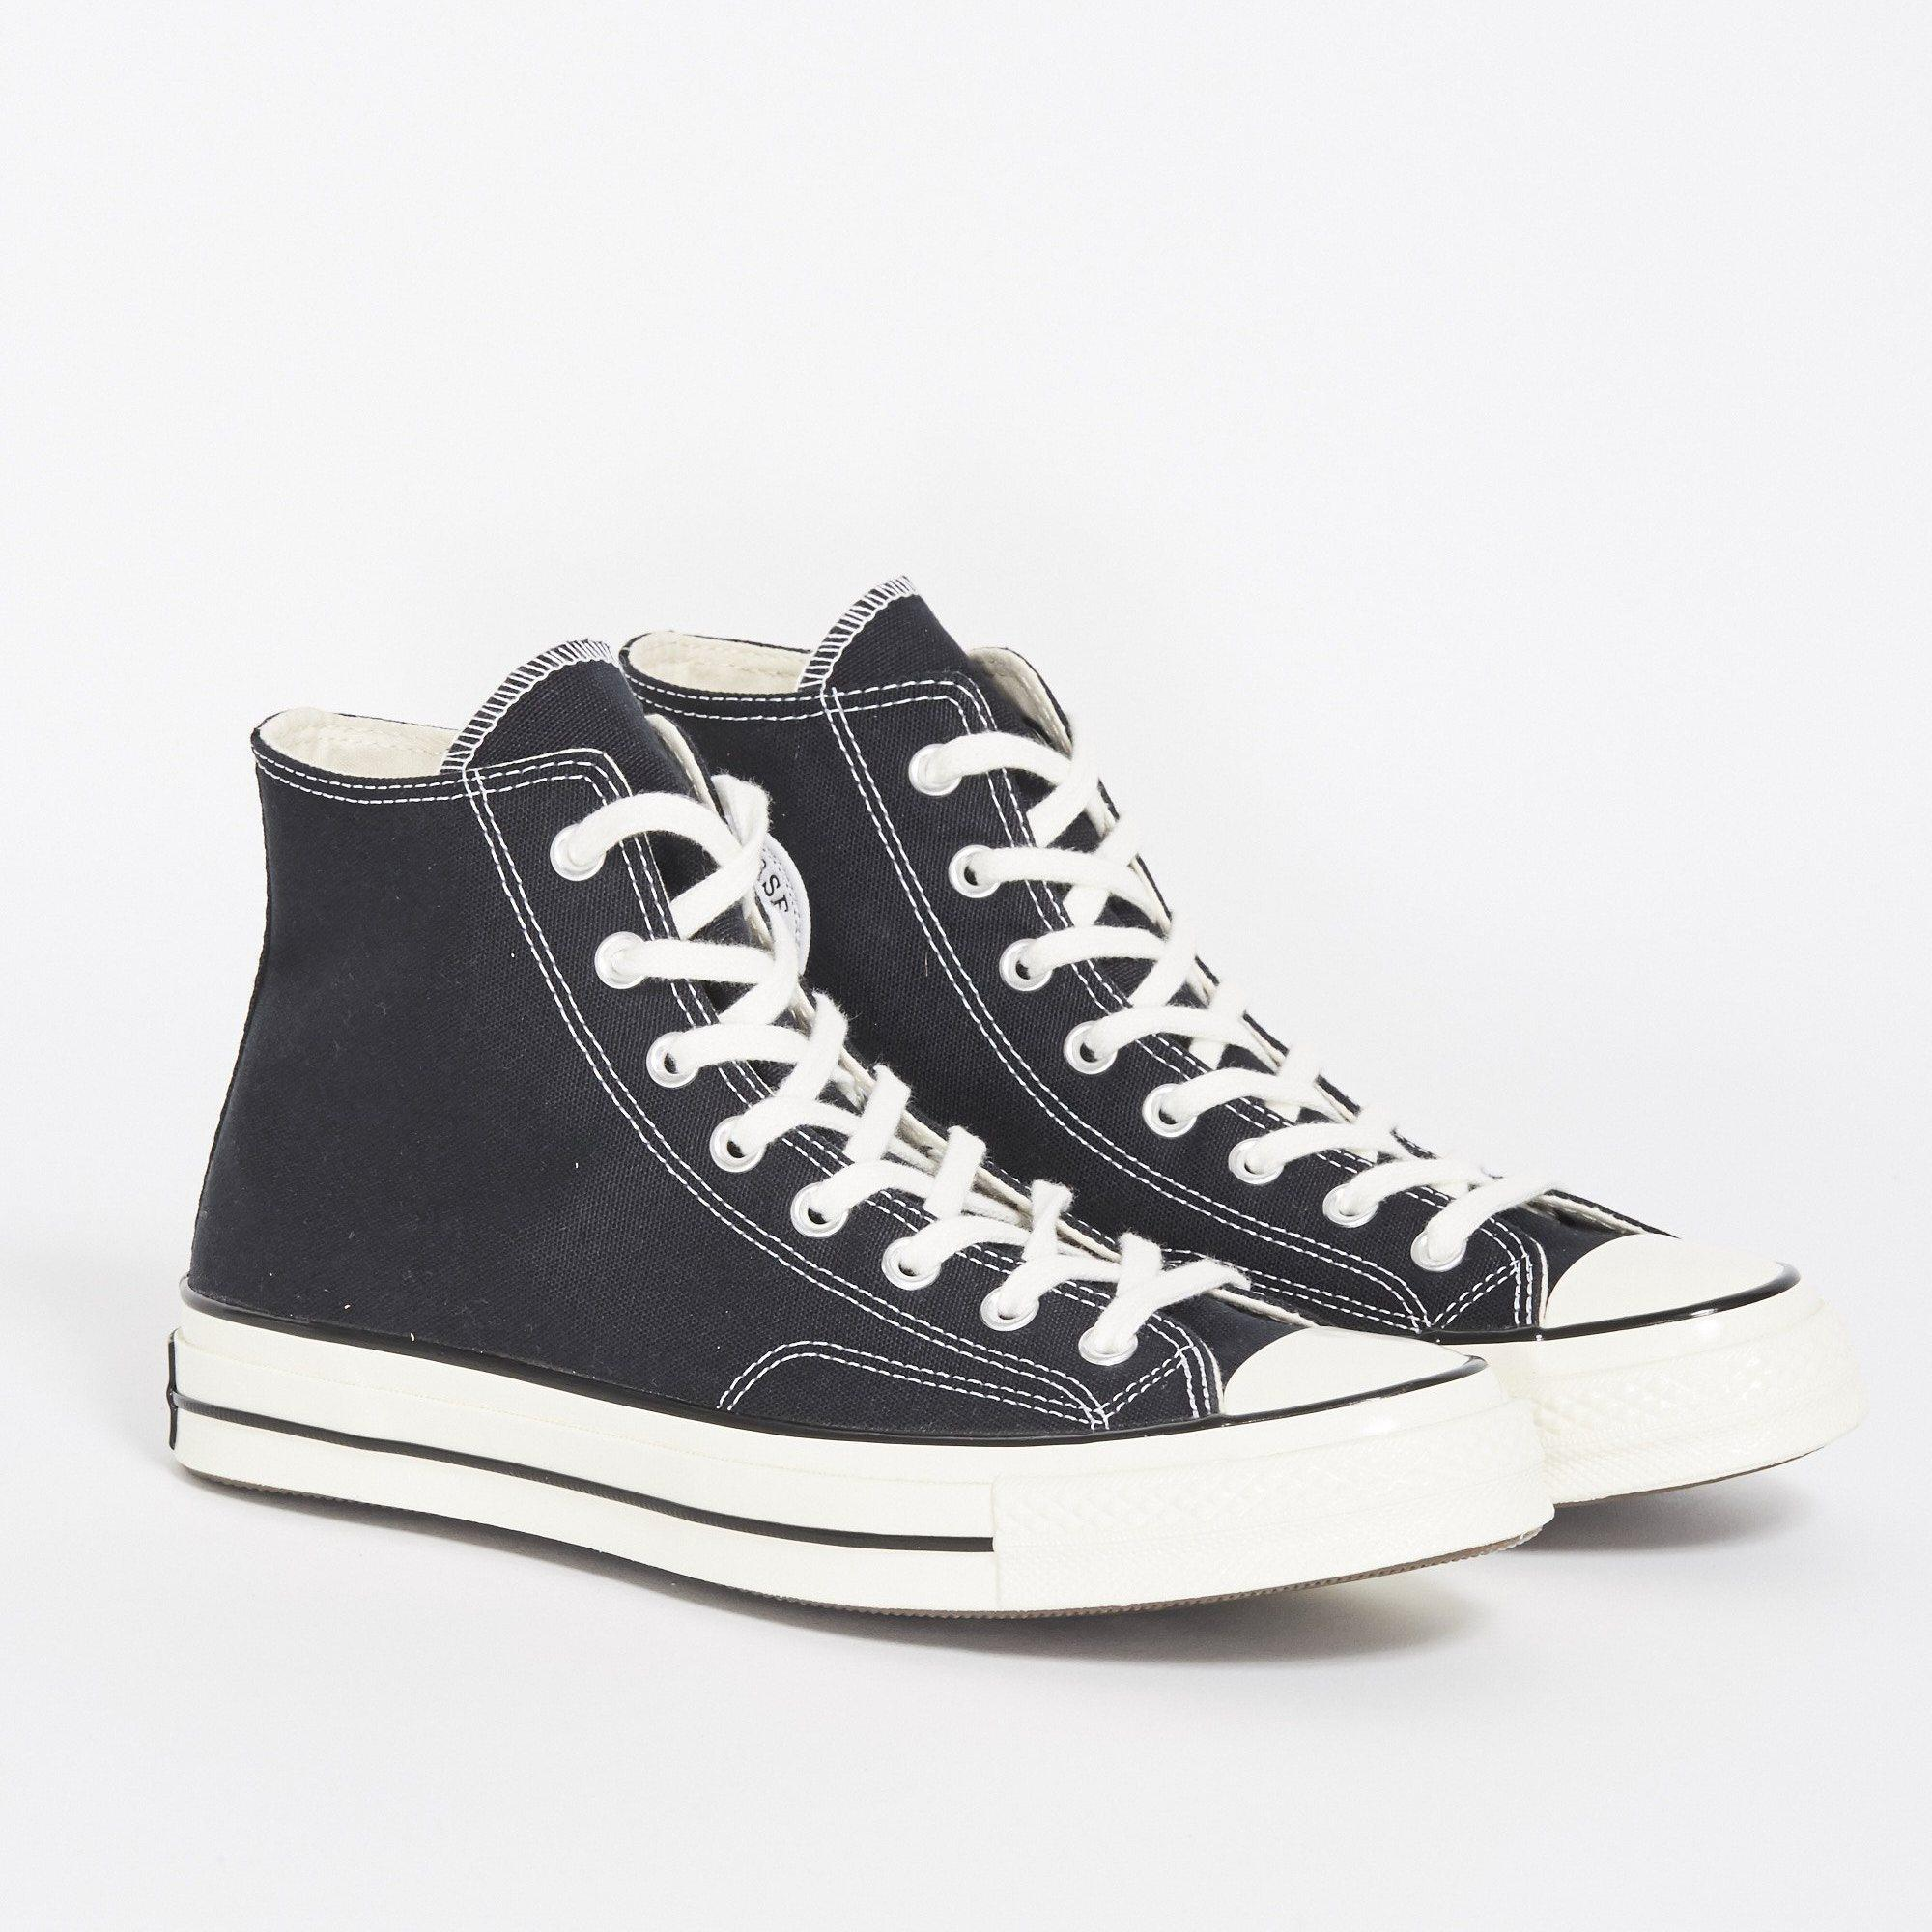 Converse Chuck Taylor 70s Canvas Hi - Black White 7c241d72be